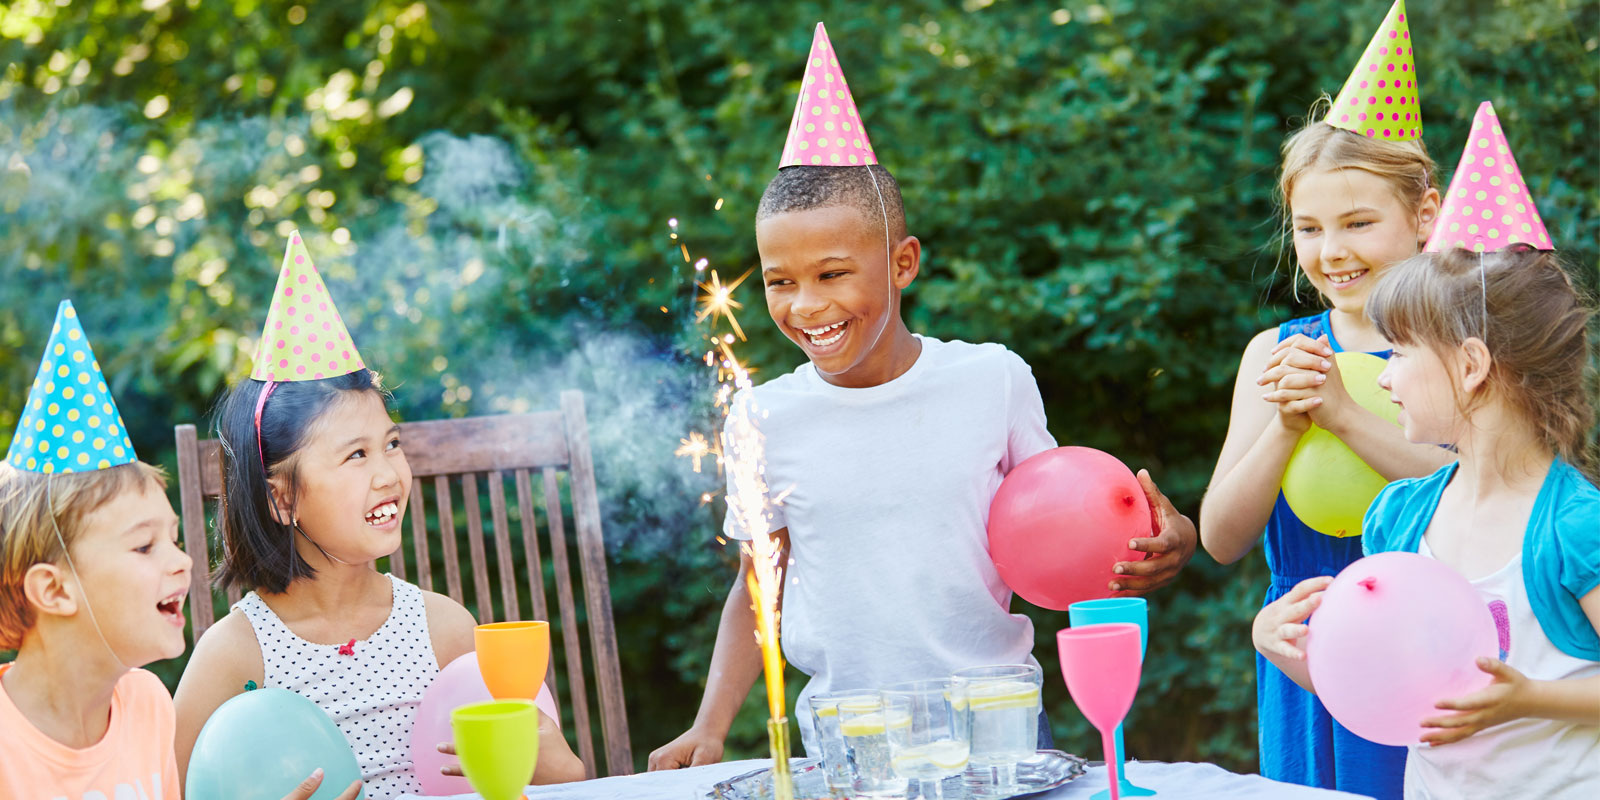 one of the best birthday party ideas for kids in Northern VA